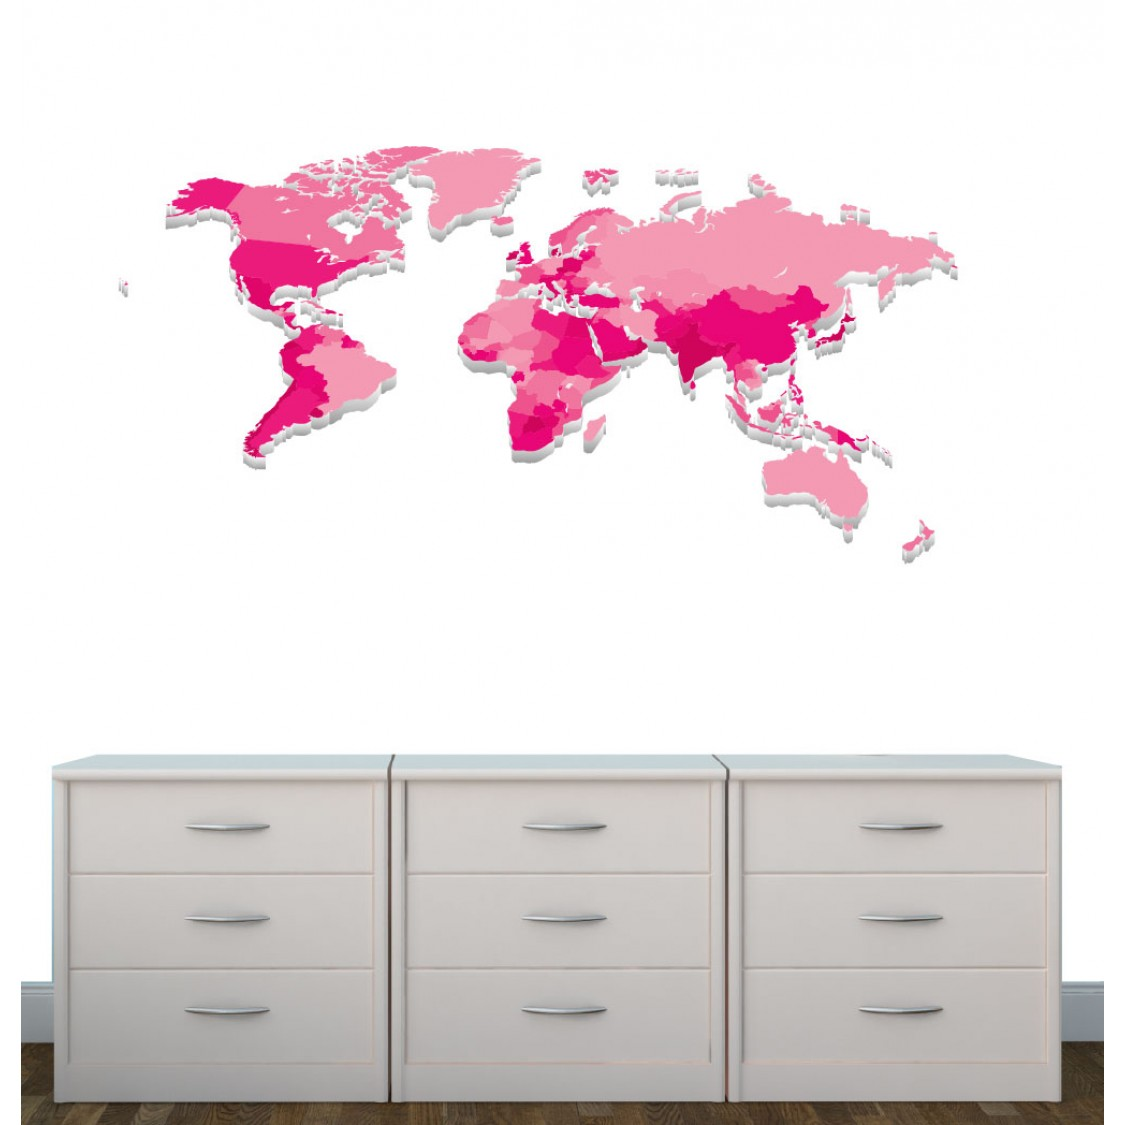 map wall decals are great for any kids room realistic wall stickers for kids bedrooms world map decals for children